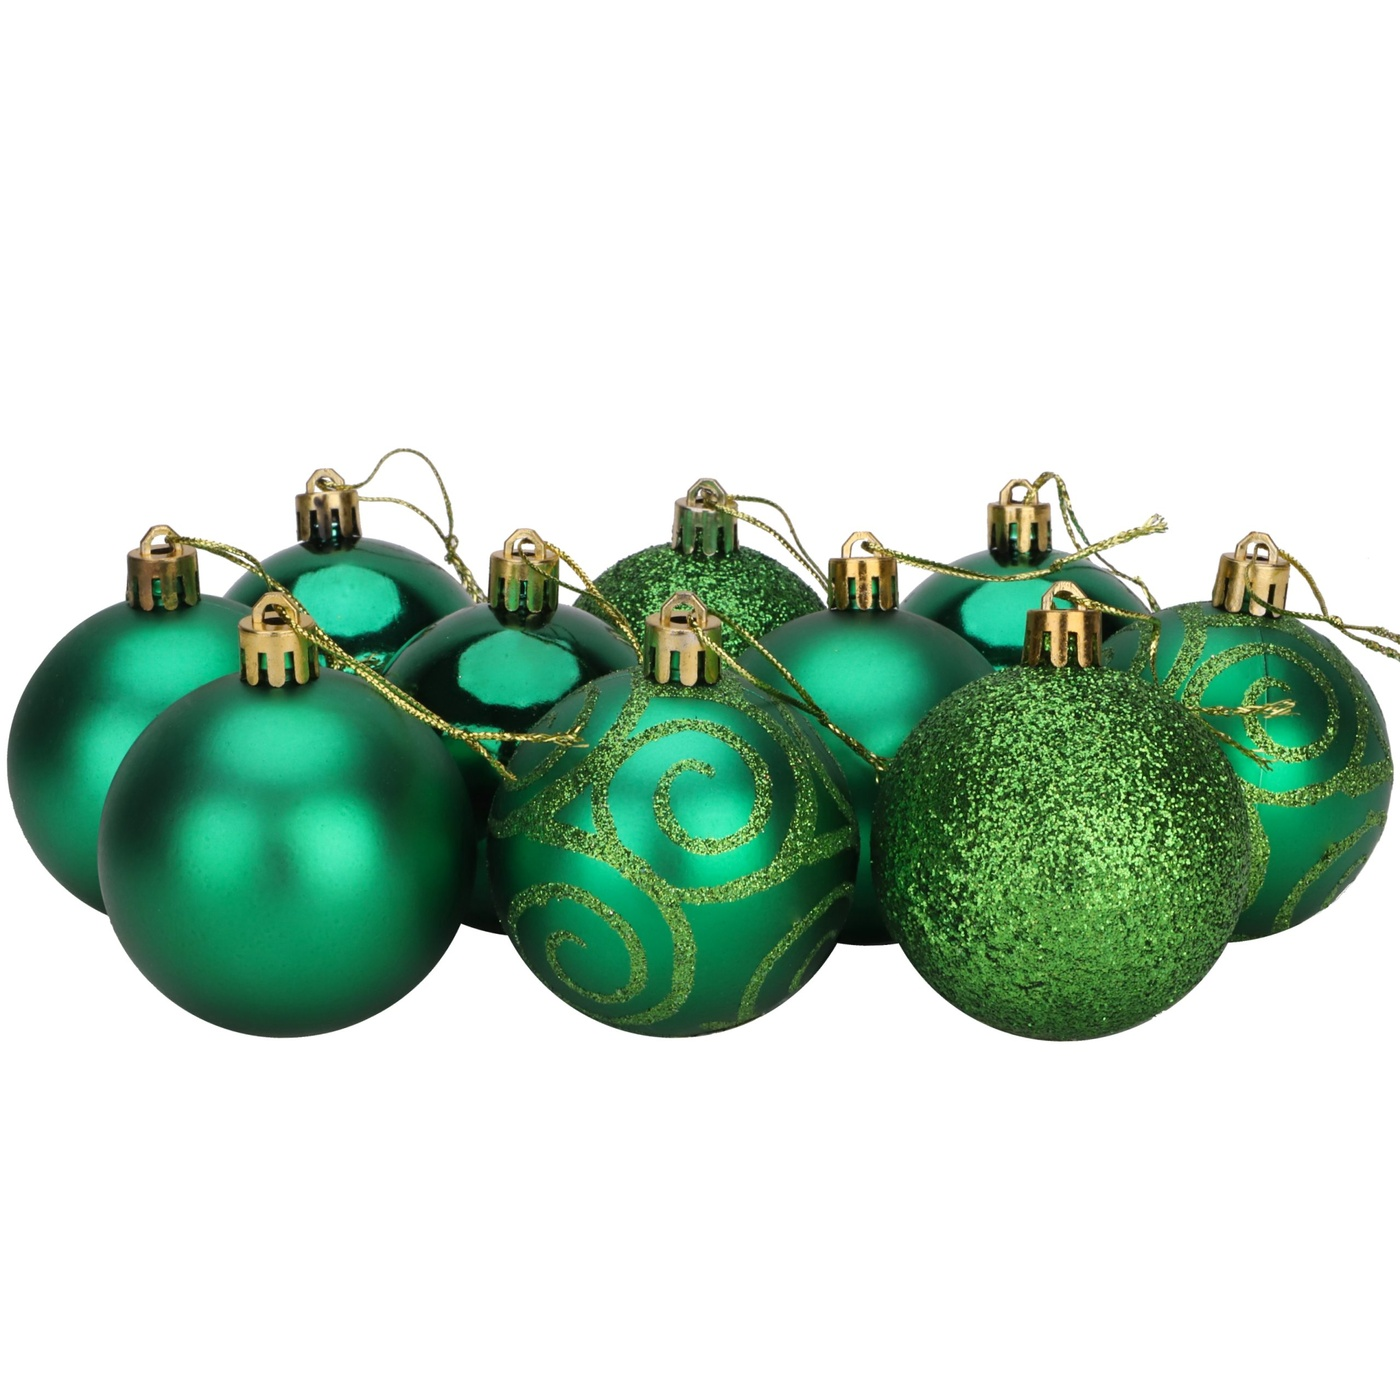 Christmas Concepts Pack Of 10 60mm Christmas Tree Baubles Shiny Matte Glitter Decorated Baubles Emerald Green Christmas Concepts